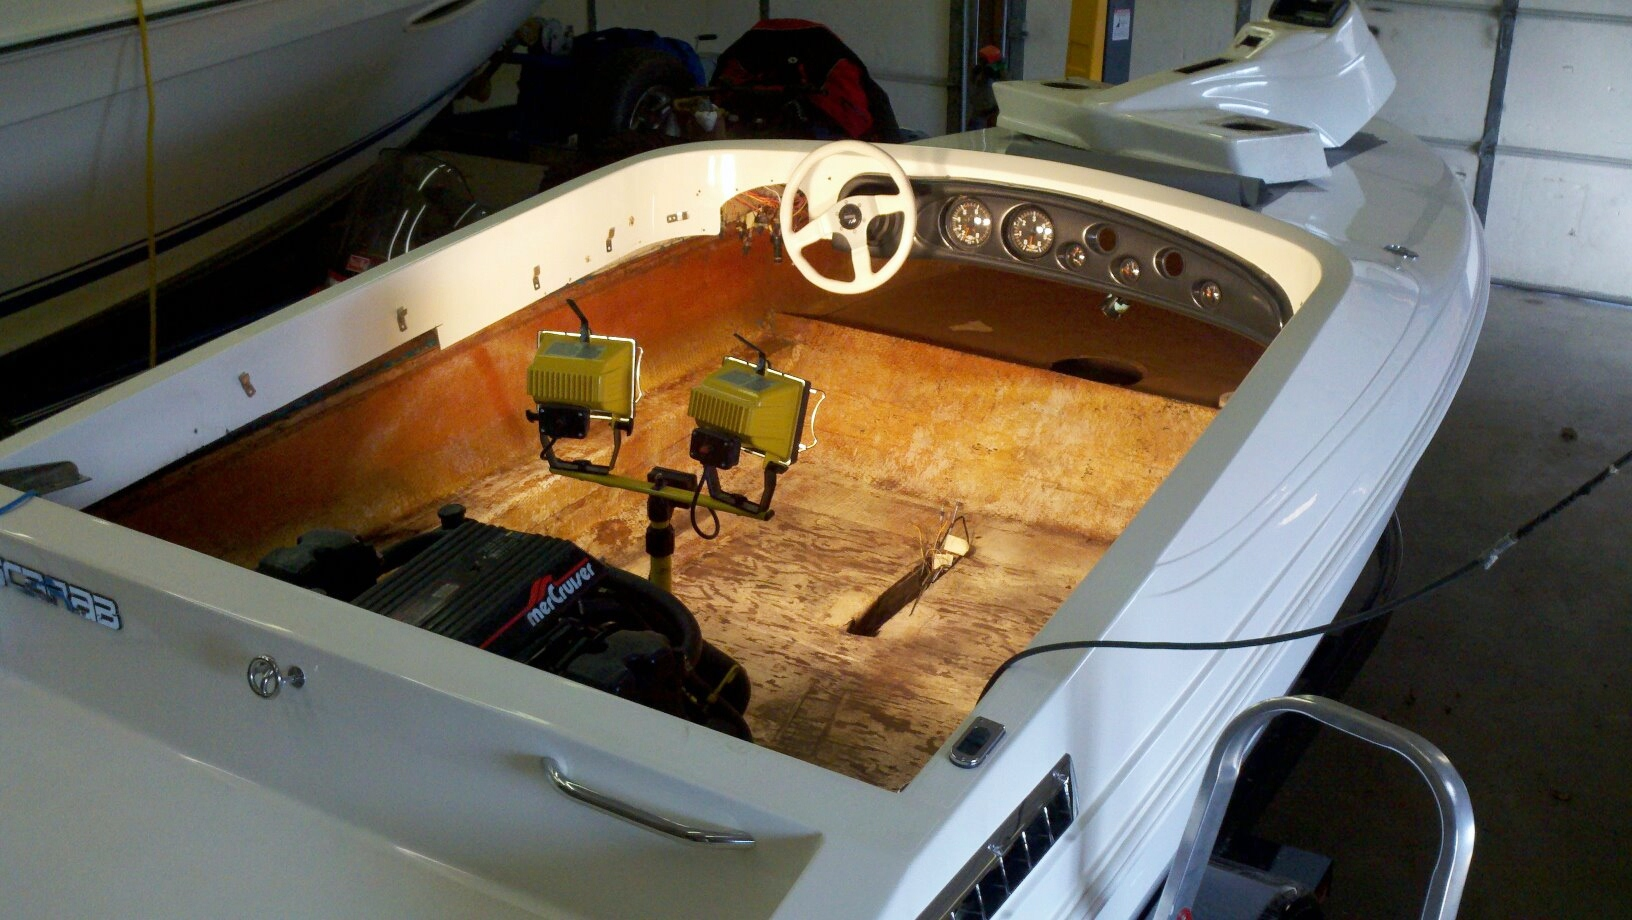 Custom Marine Interiors, Upholstery, and Carpeting: Wellcraft Scarab with upholstery and carpeting taken out